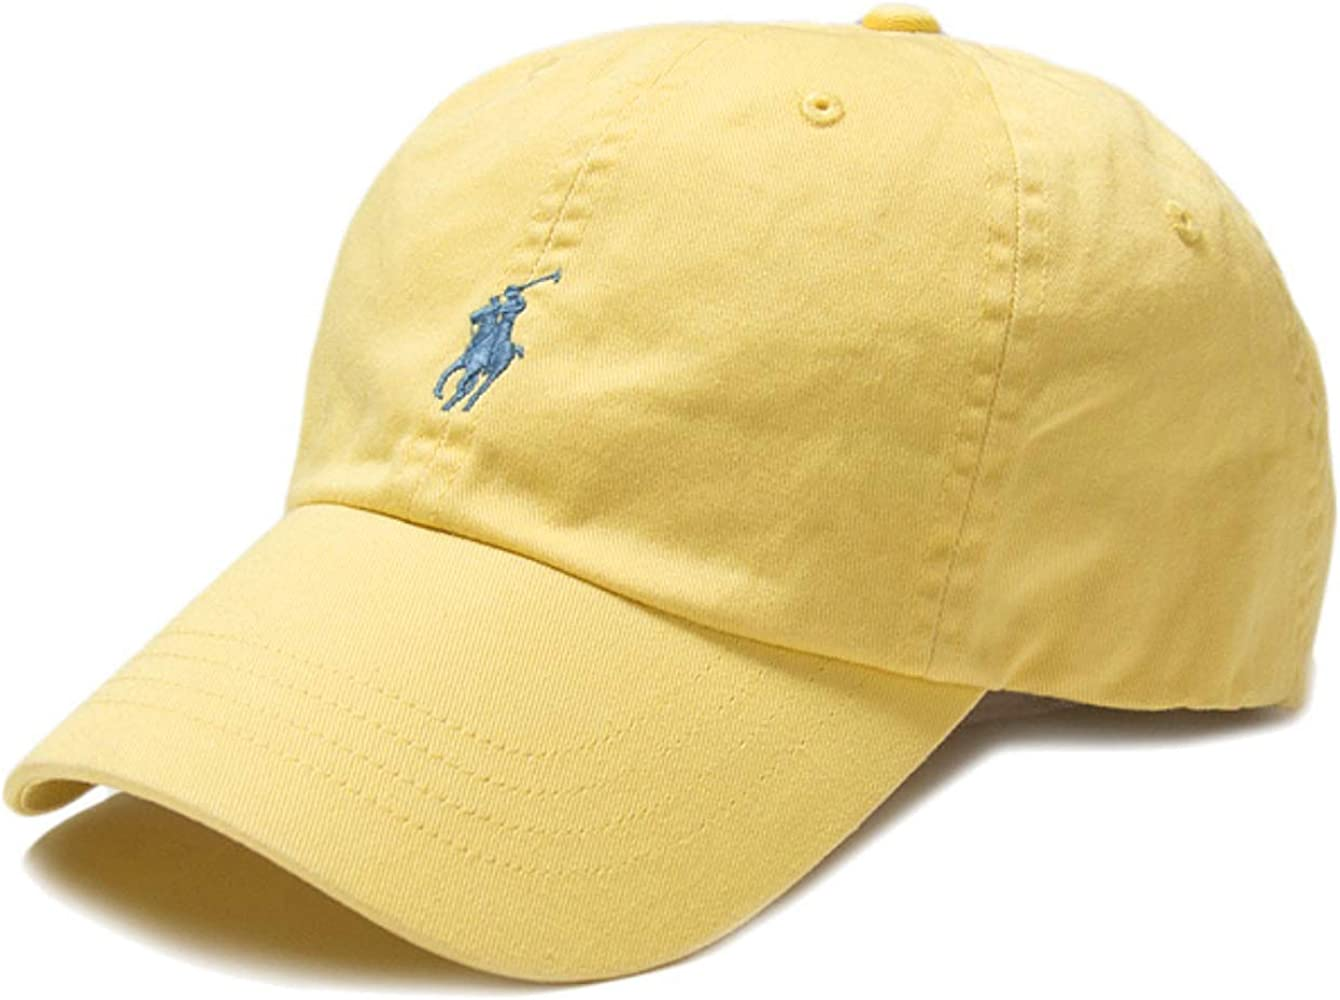 Ralph Lauren - Gorra de béisbol, Color Amarillo: Amazon.es: Ropa y ...